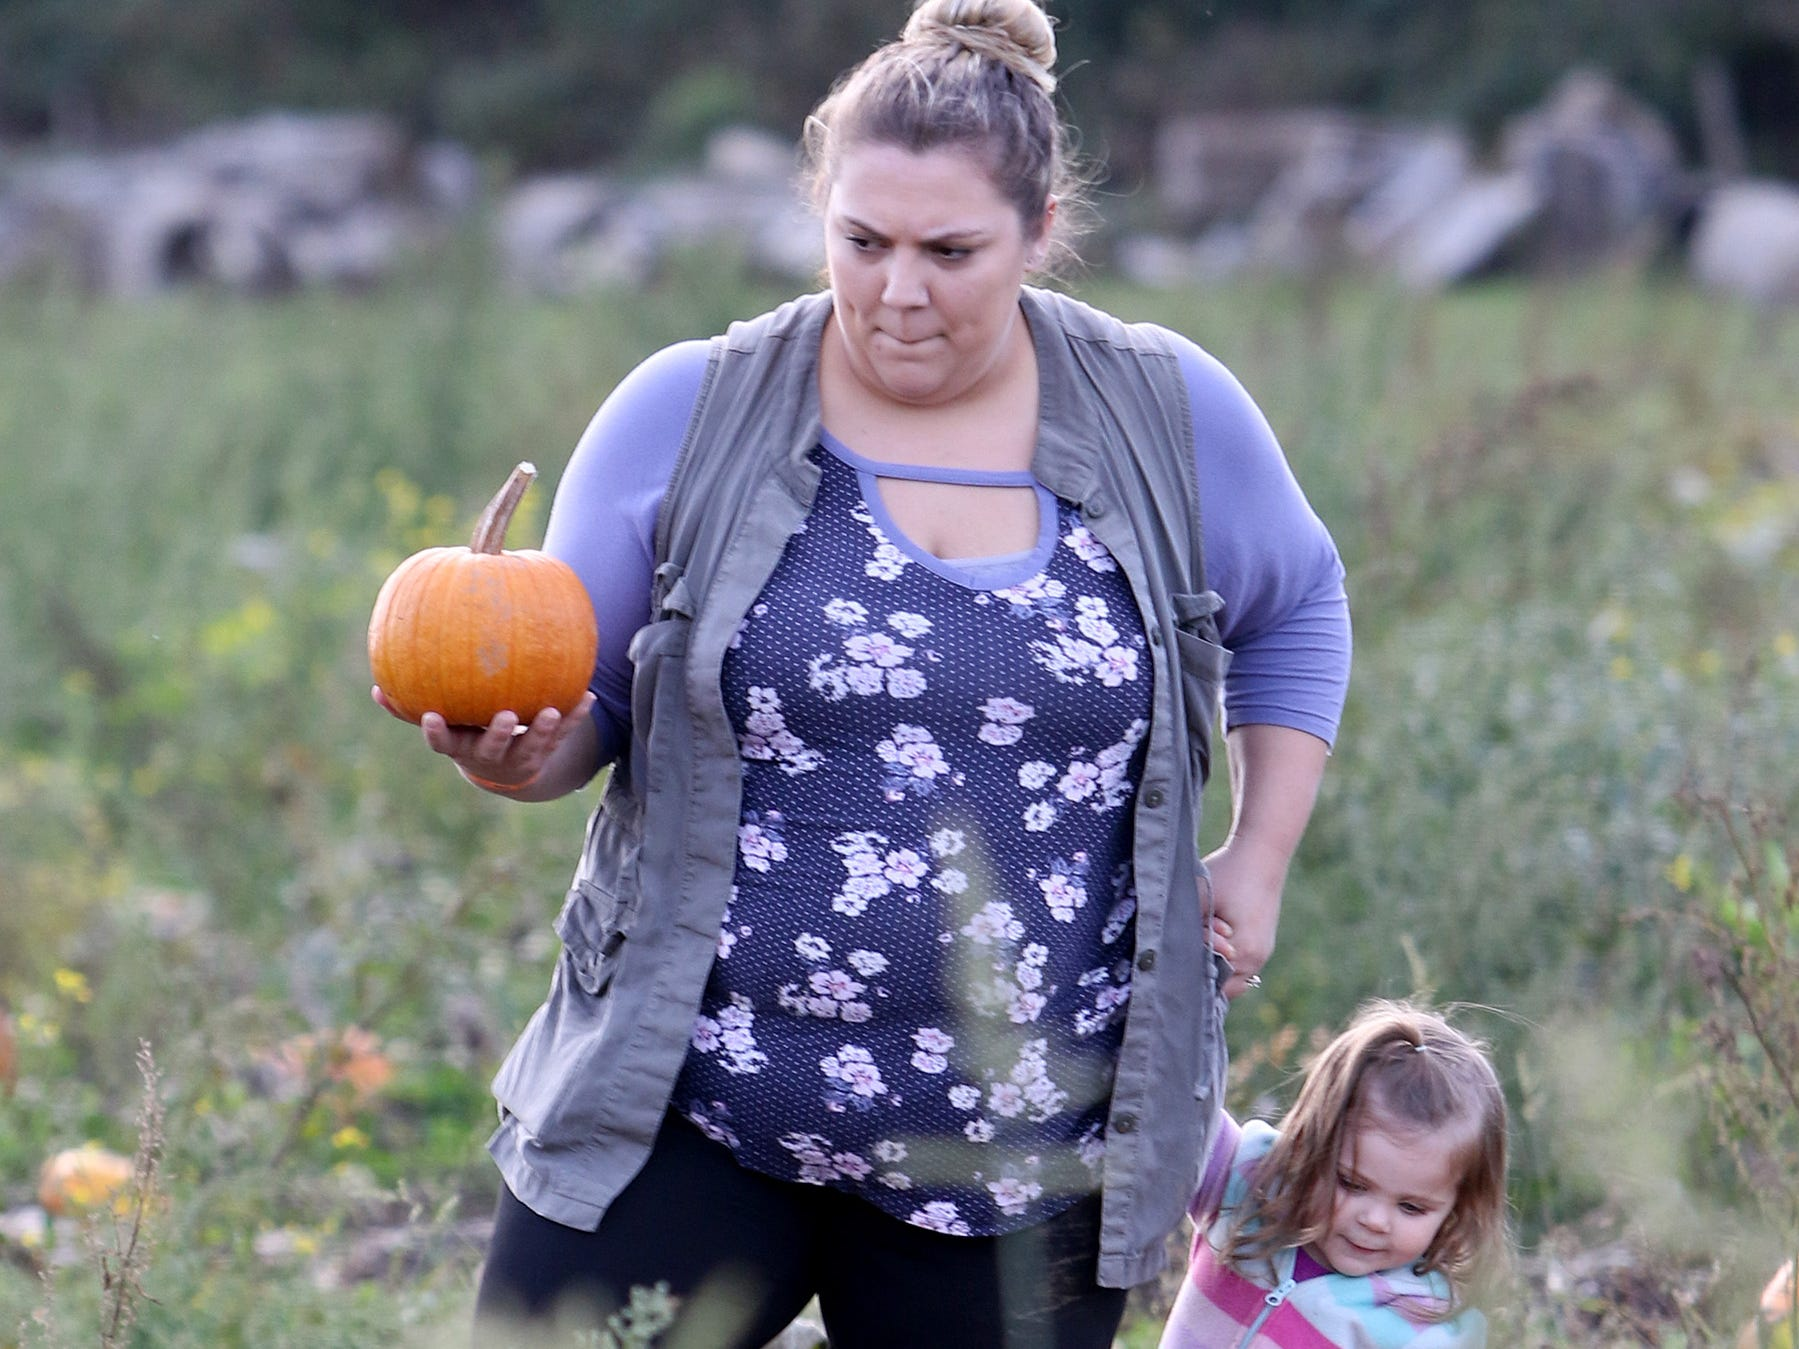 Danielle Contes, of Shelton, walks with her daughter Hailey through the Hunter Farms pumpkin patch.